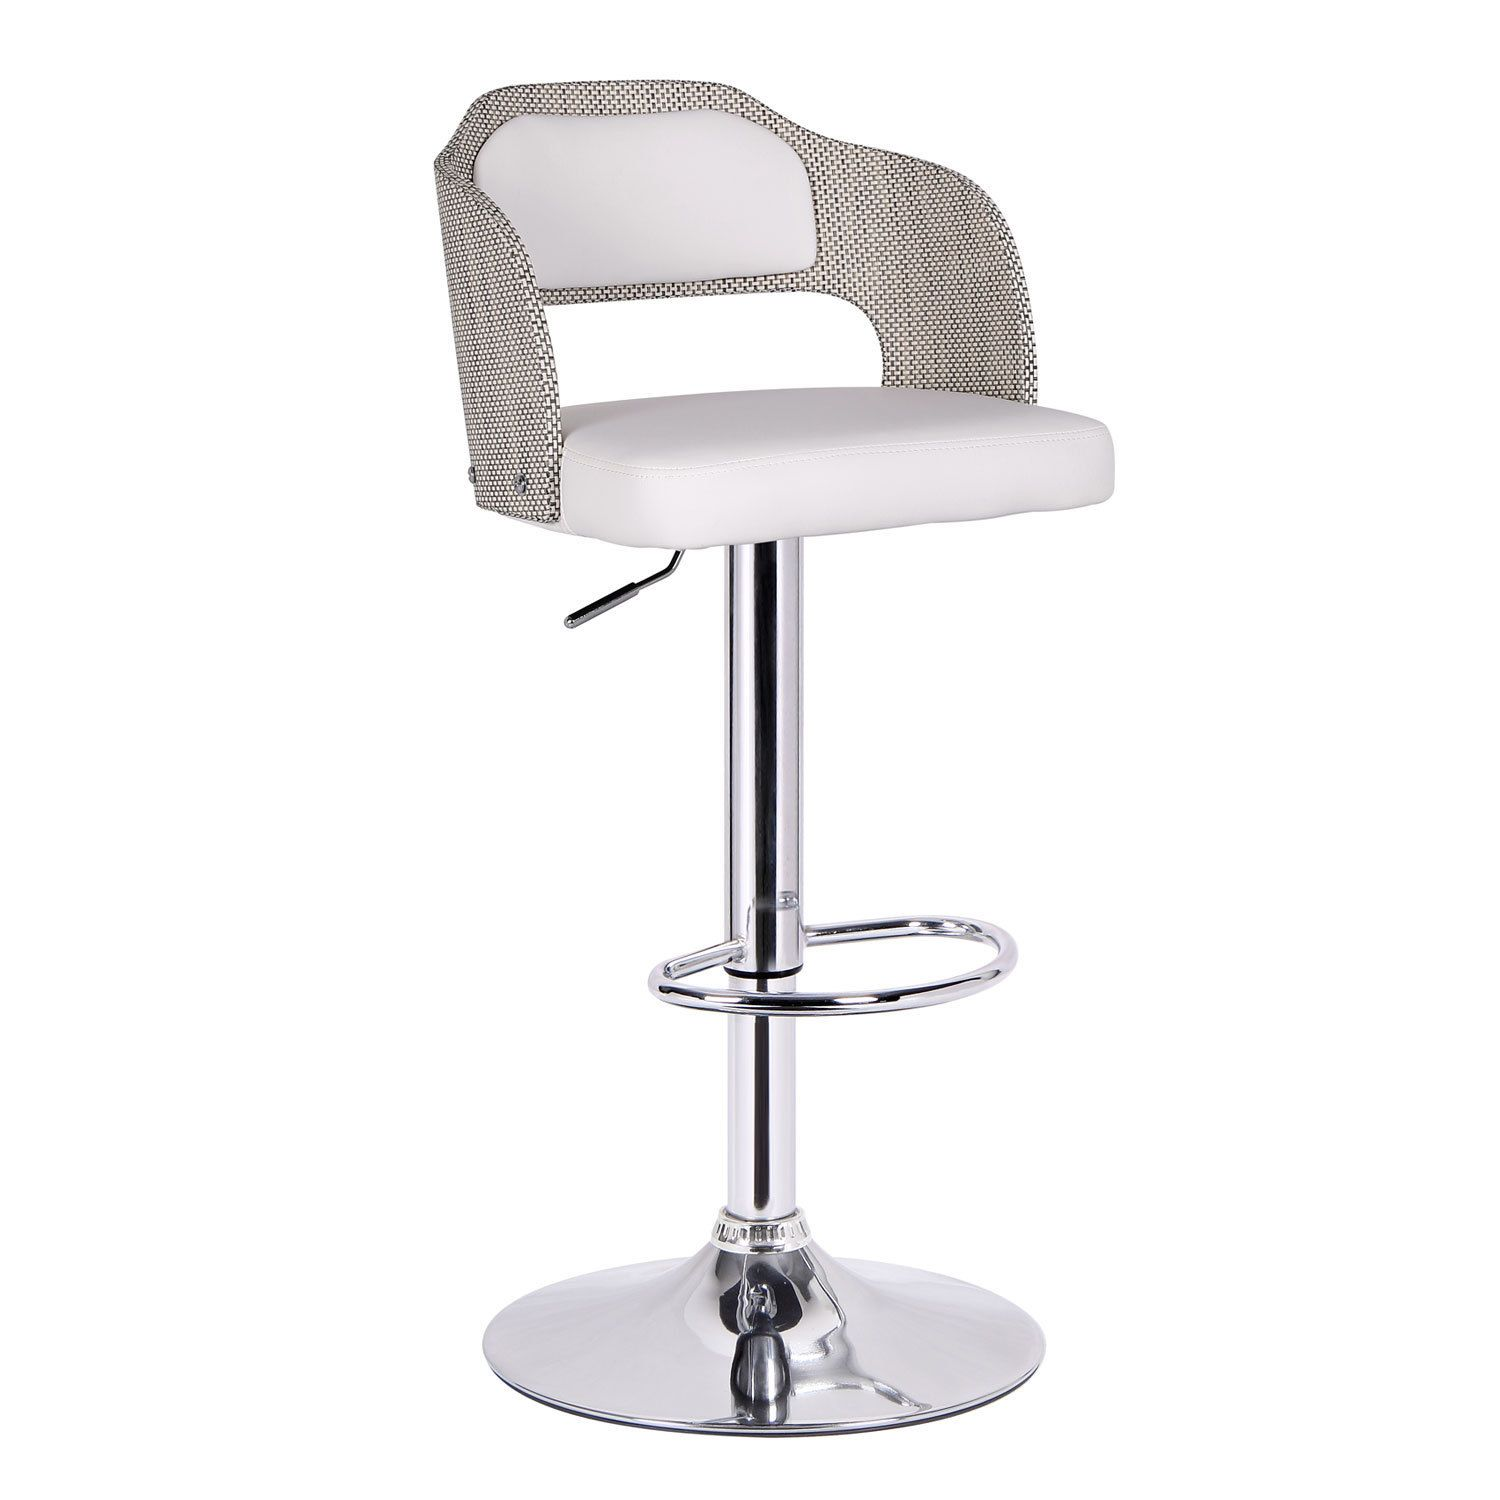 Marvelous Adeco White Leatherette Bent Wood Chrome Hydraulic Lift Low Back Adjustable  Pedestal Bar Stool   Overstock™ Shopping   Great Deals On Bar Stools Good Ideas